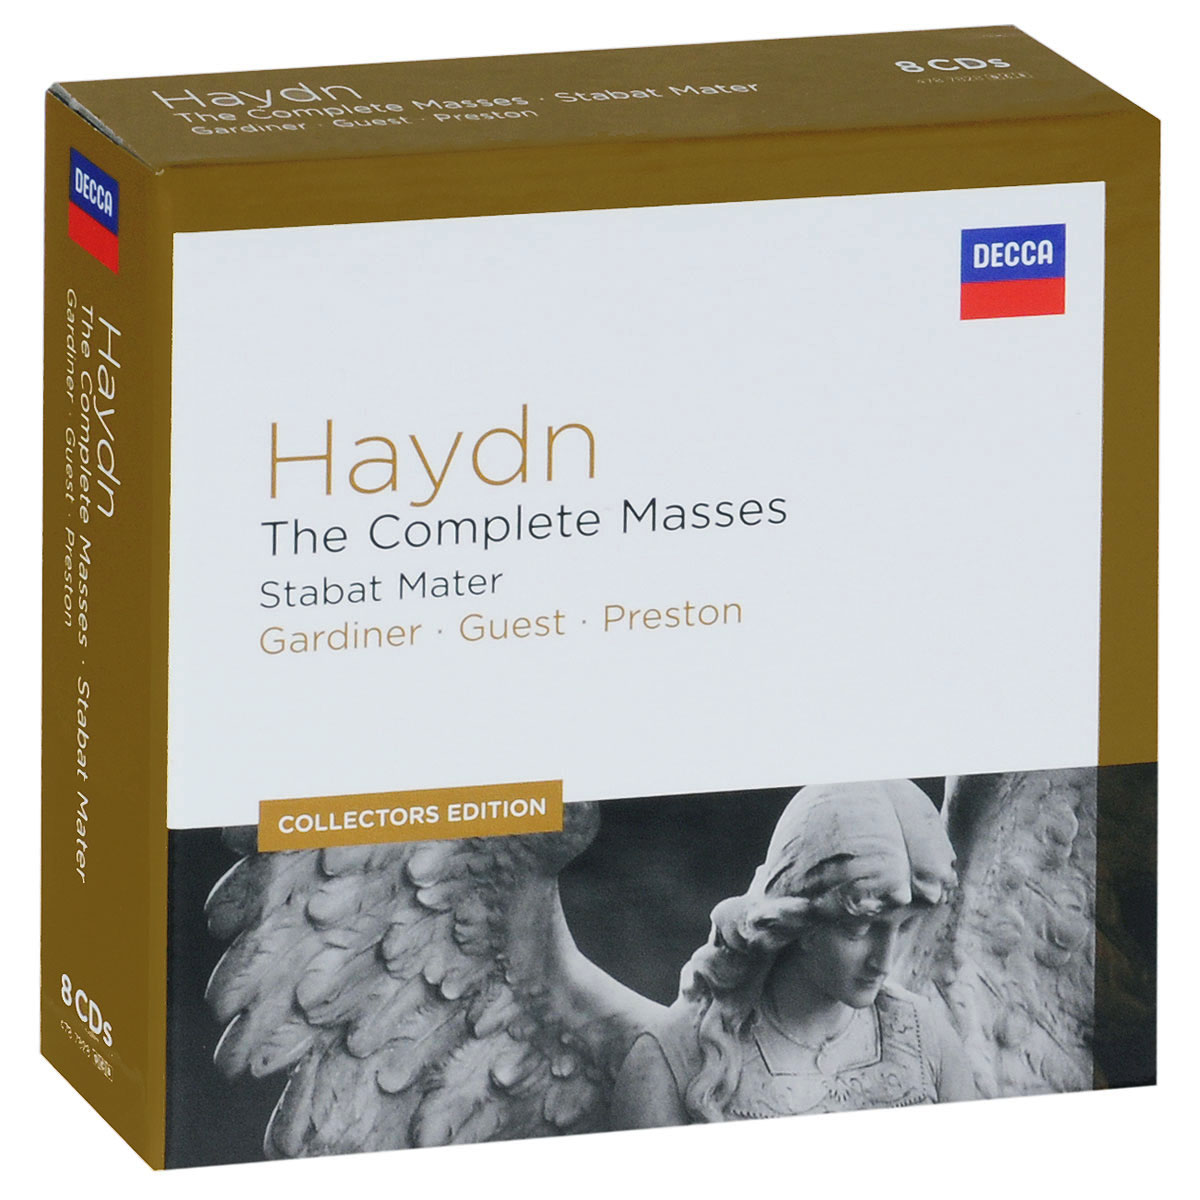 Haydn. The Complete Masses. Stabat Mater (Collectors Edition) (8 CD)